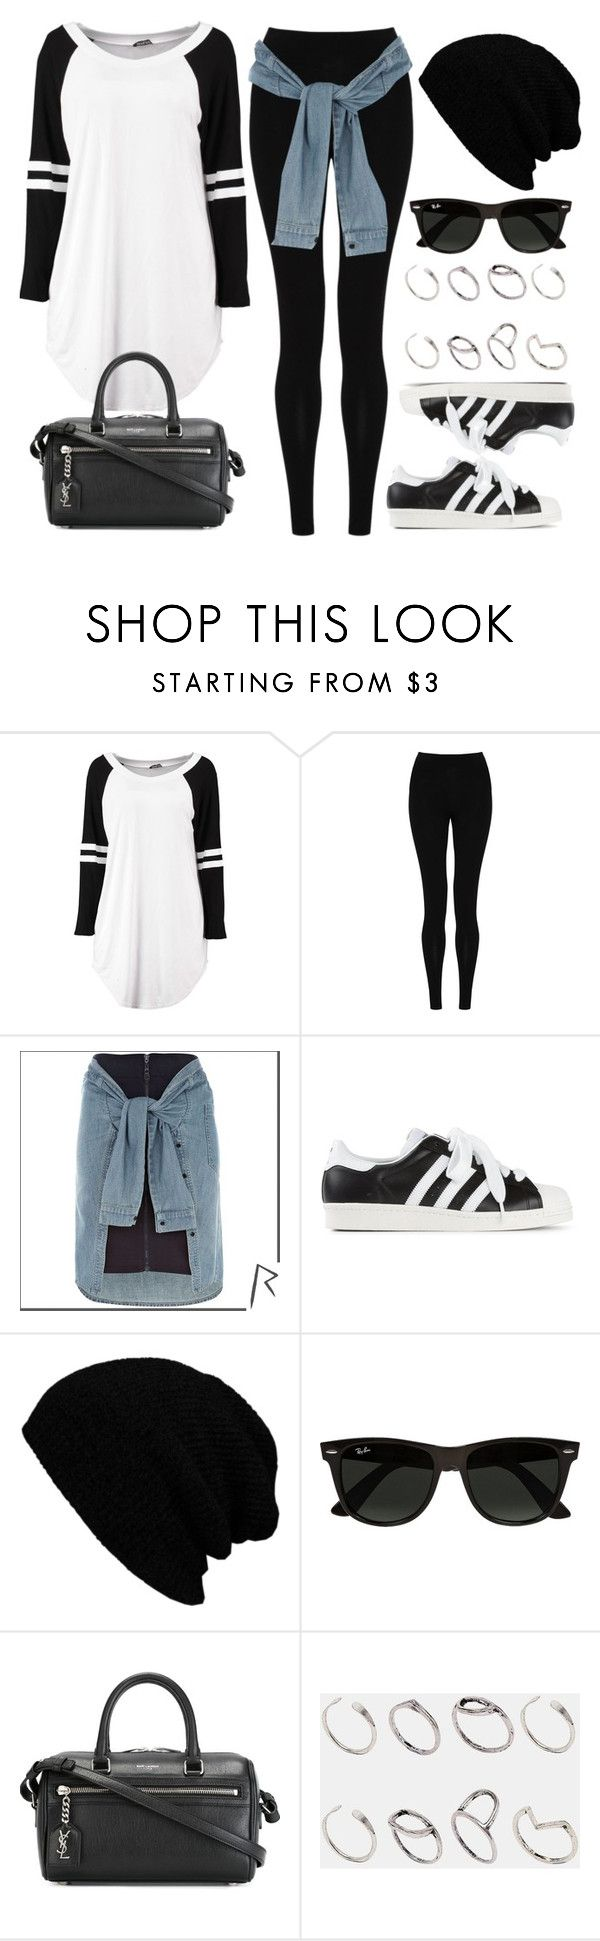 """""""Style #9912"""" by vany-alvarado ❤ liked on Polyvore featuring M&S Collection, River Island, adidas Originals, Ray-Ban, Yves Saint Laurent and ASOS"""